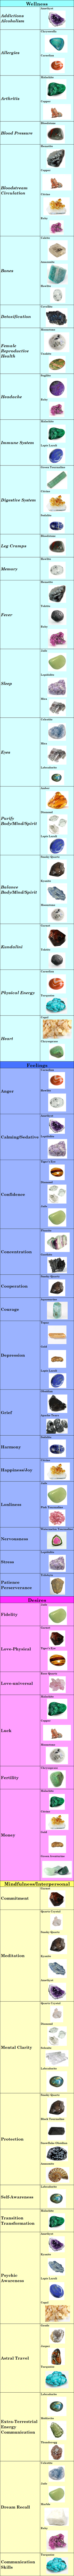 new-stone-chart.png